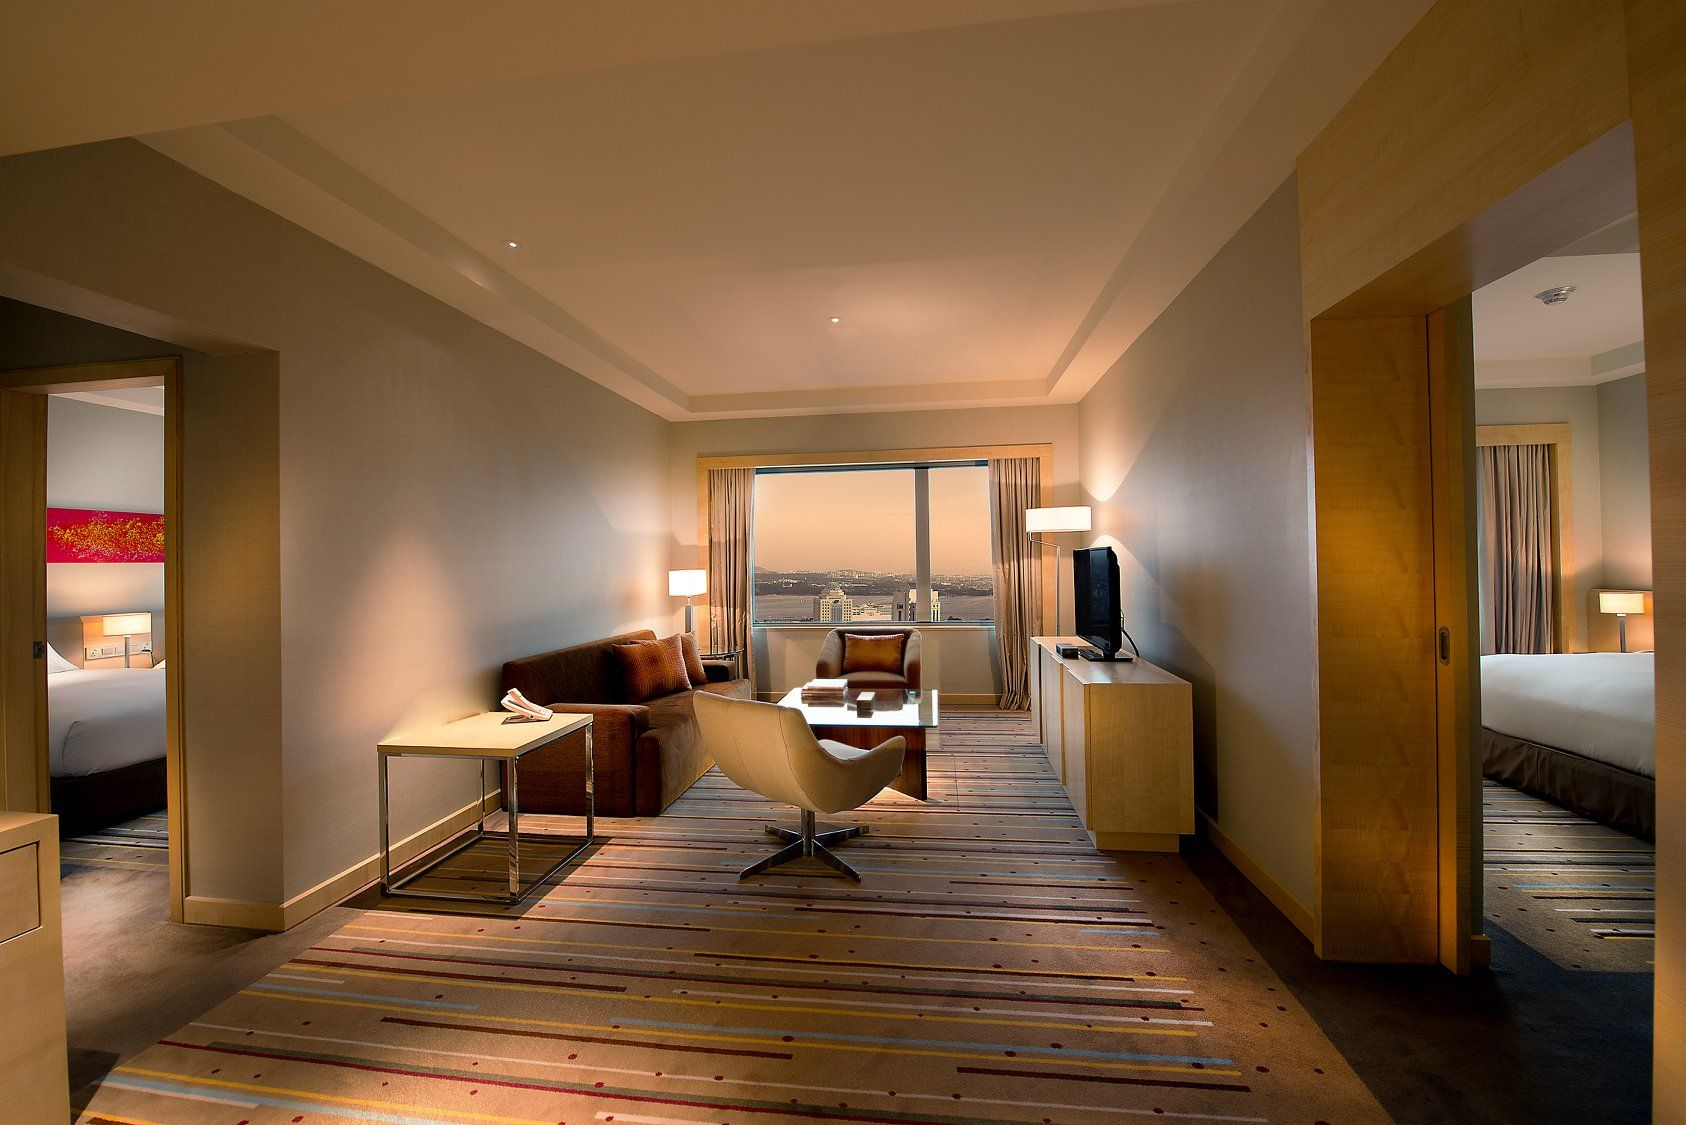 Hotels In Johor Bahru For Your #WorkFromHotel Experience